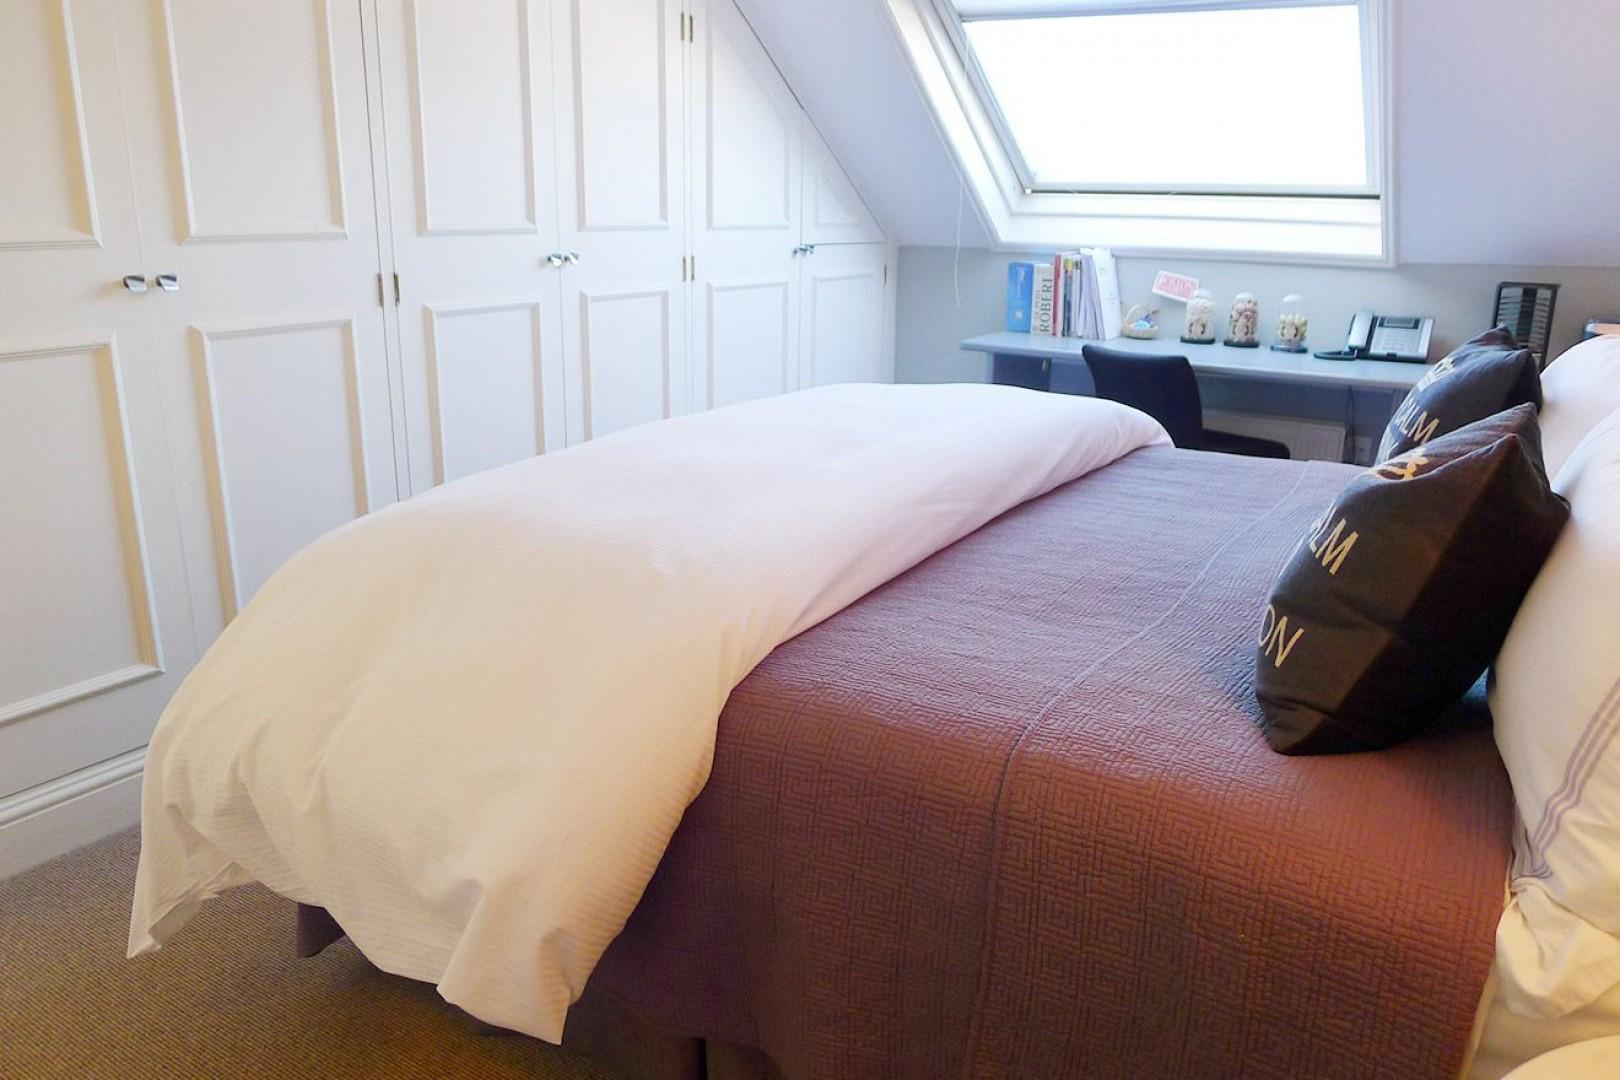 Large built in closets and a comfortable bed that can be unzipped to form two beds